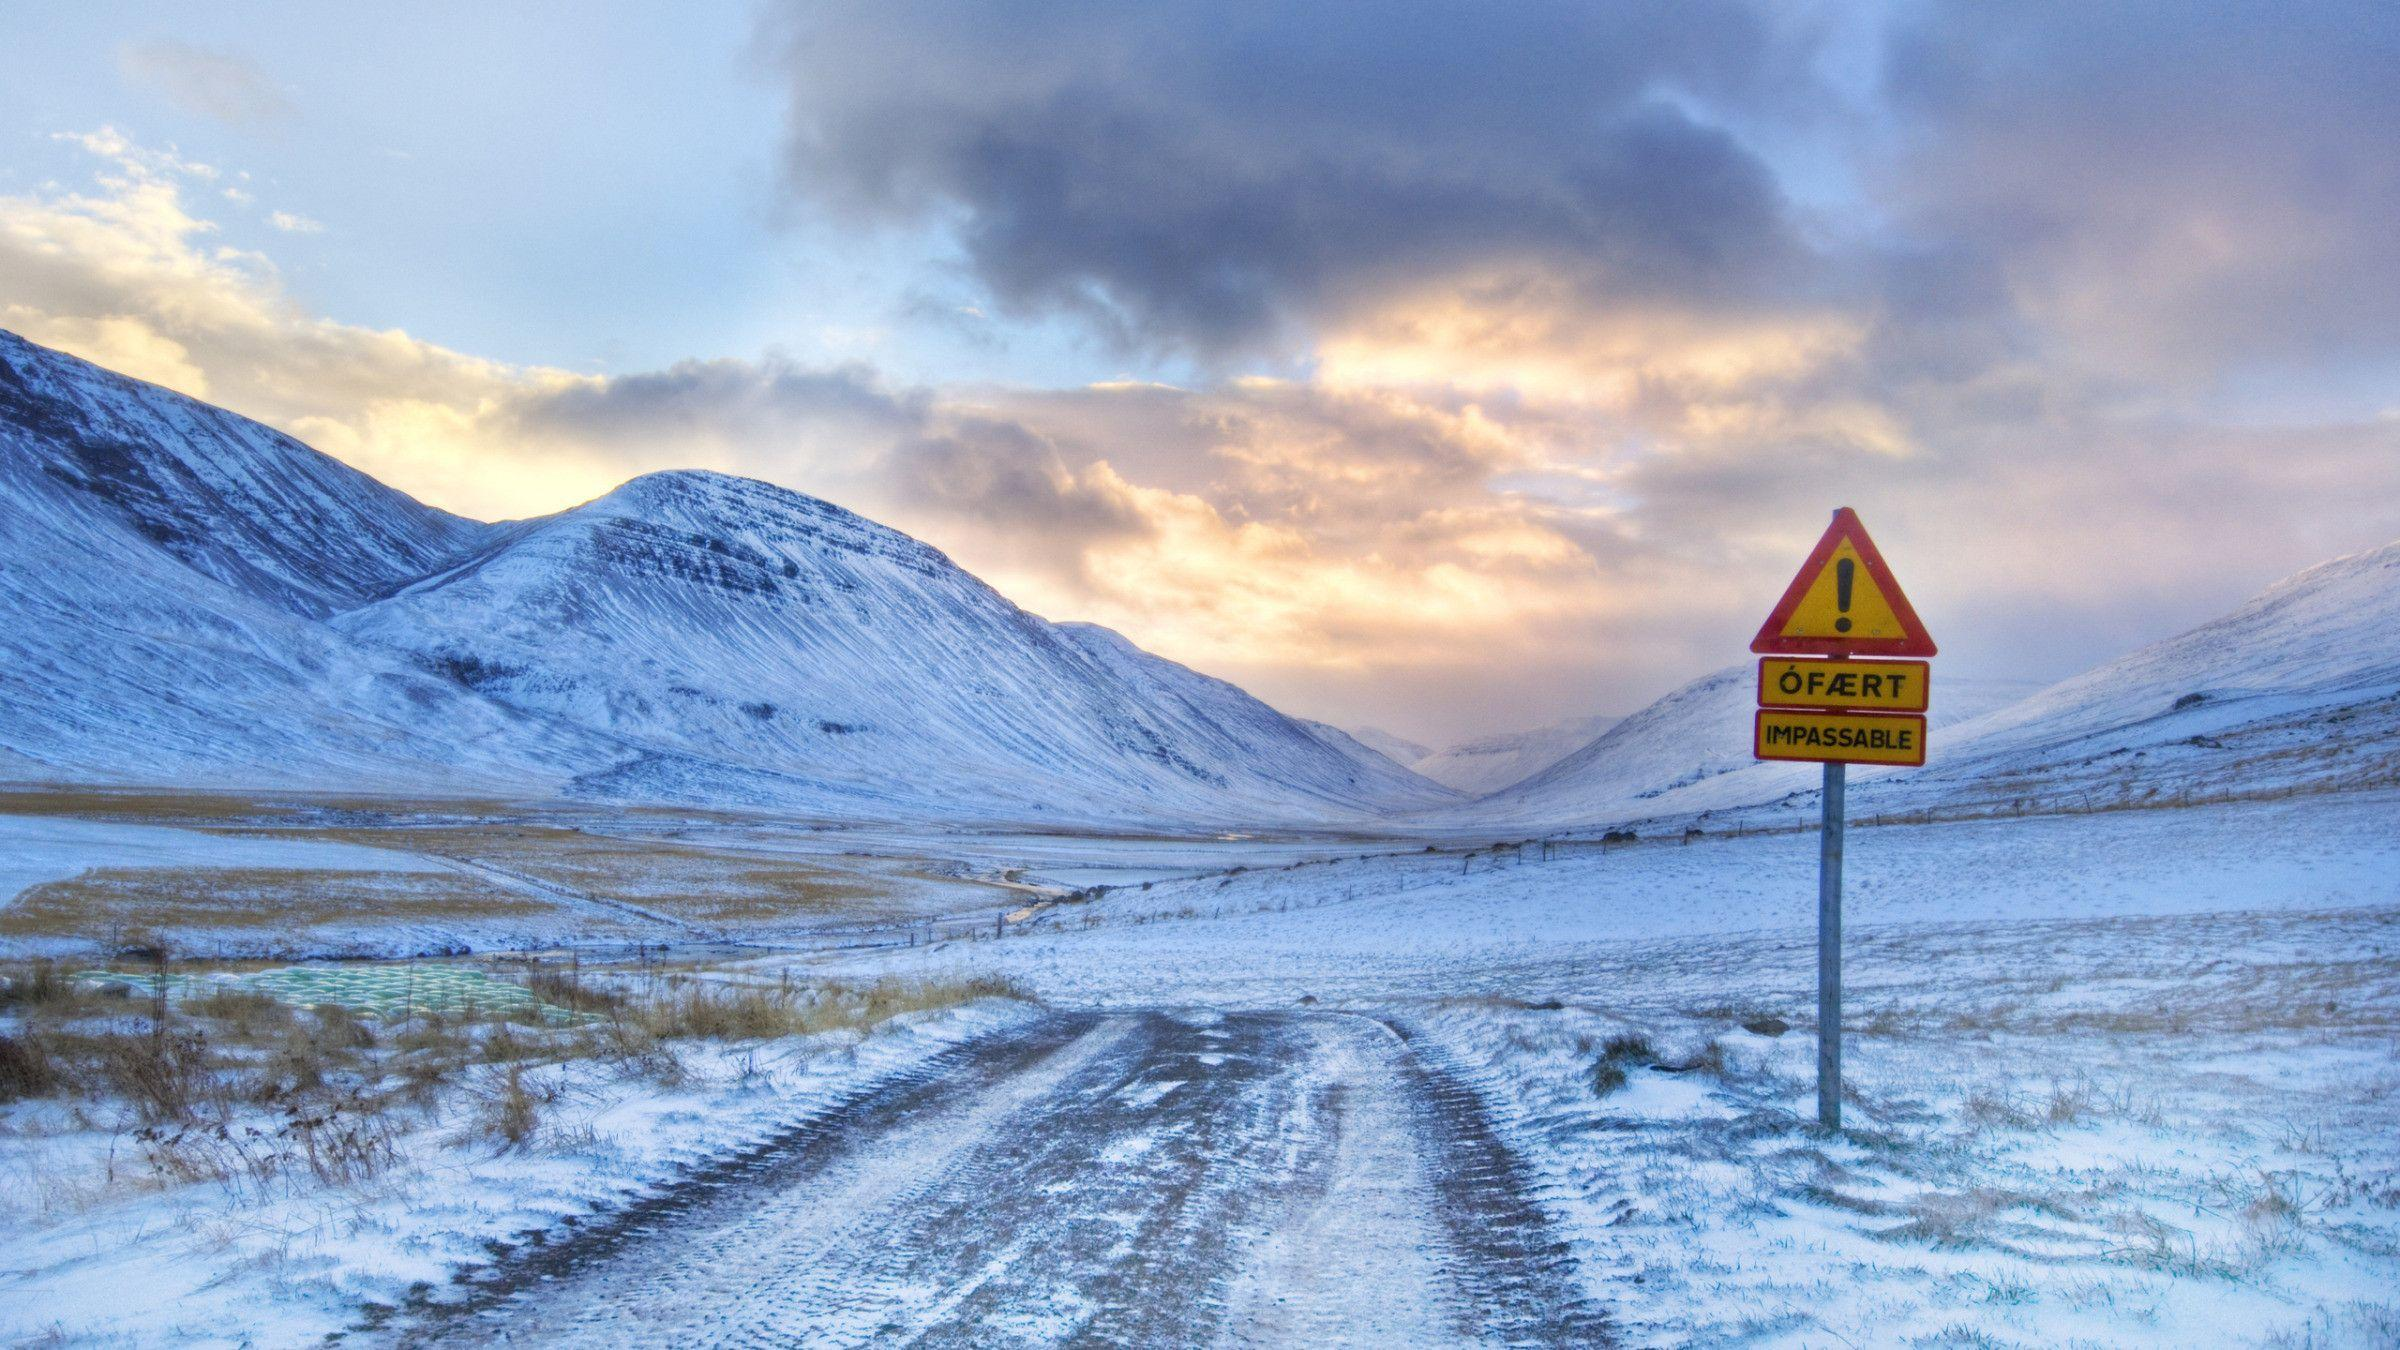 Iceland S Ring Road Wallpapers: Iceland Wallpapers